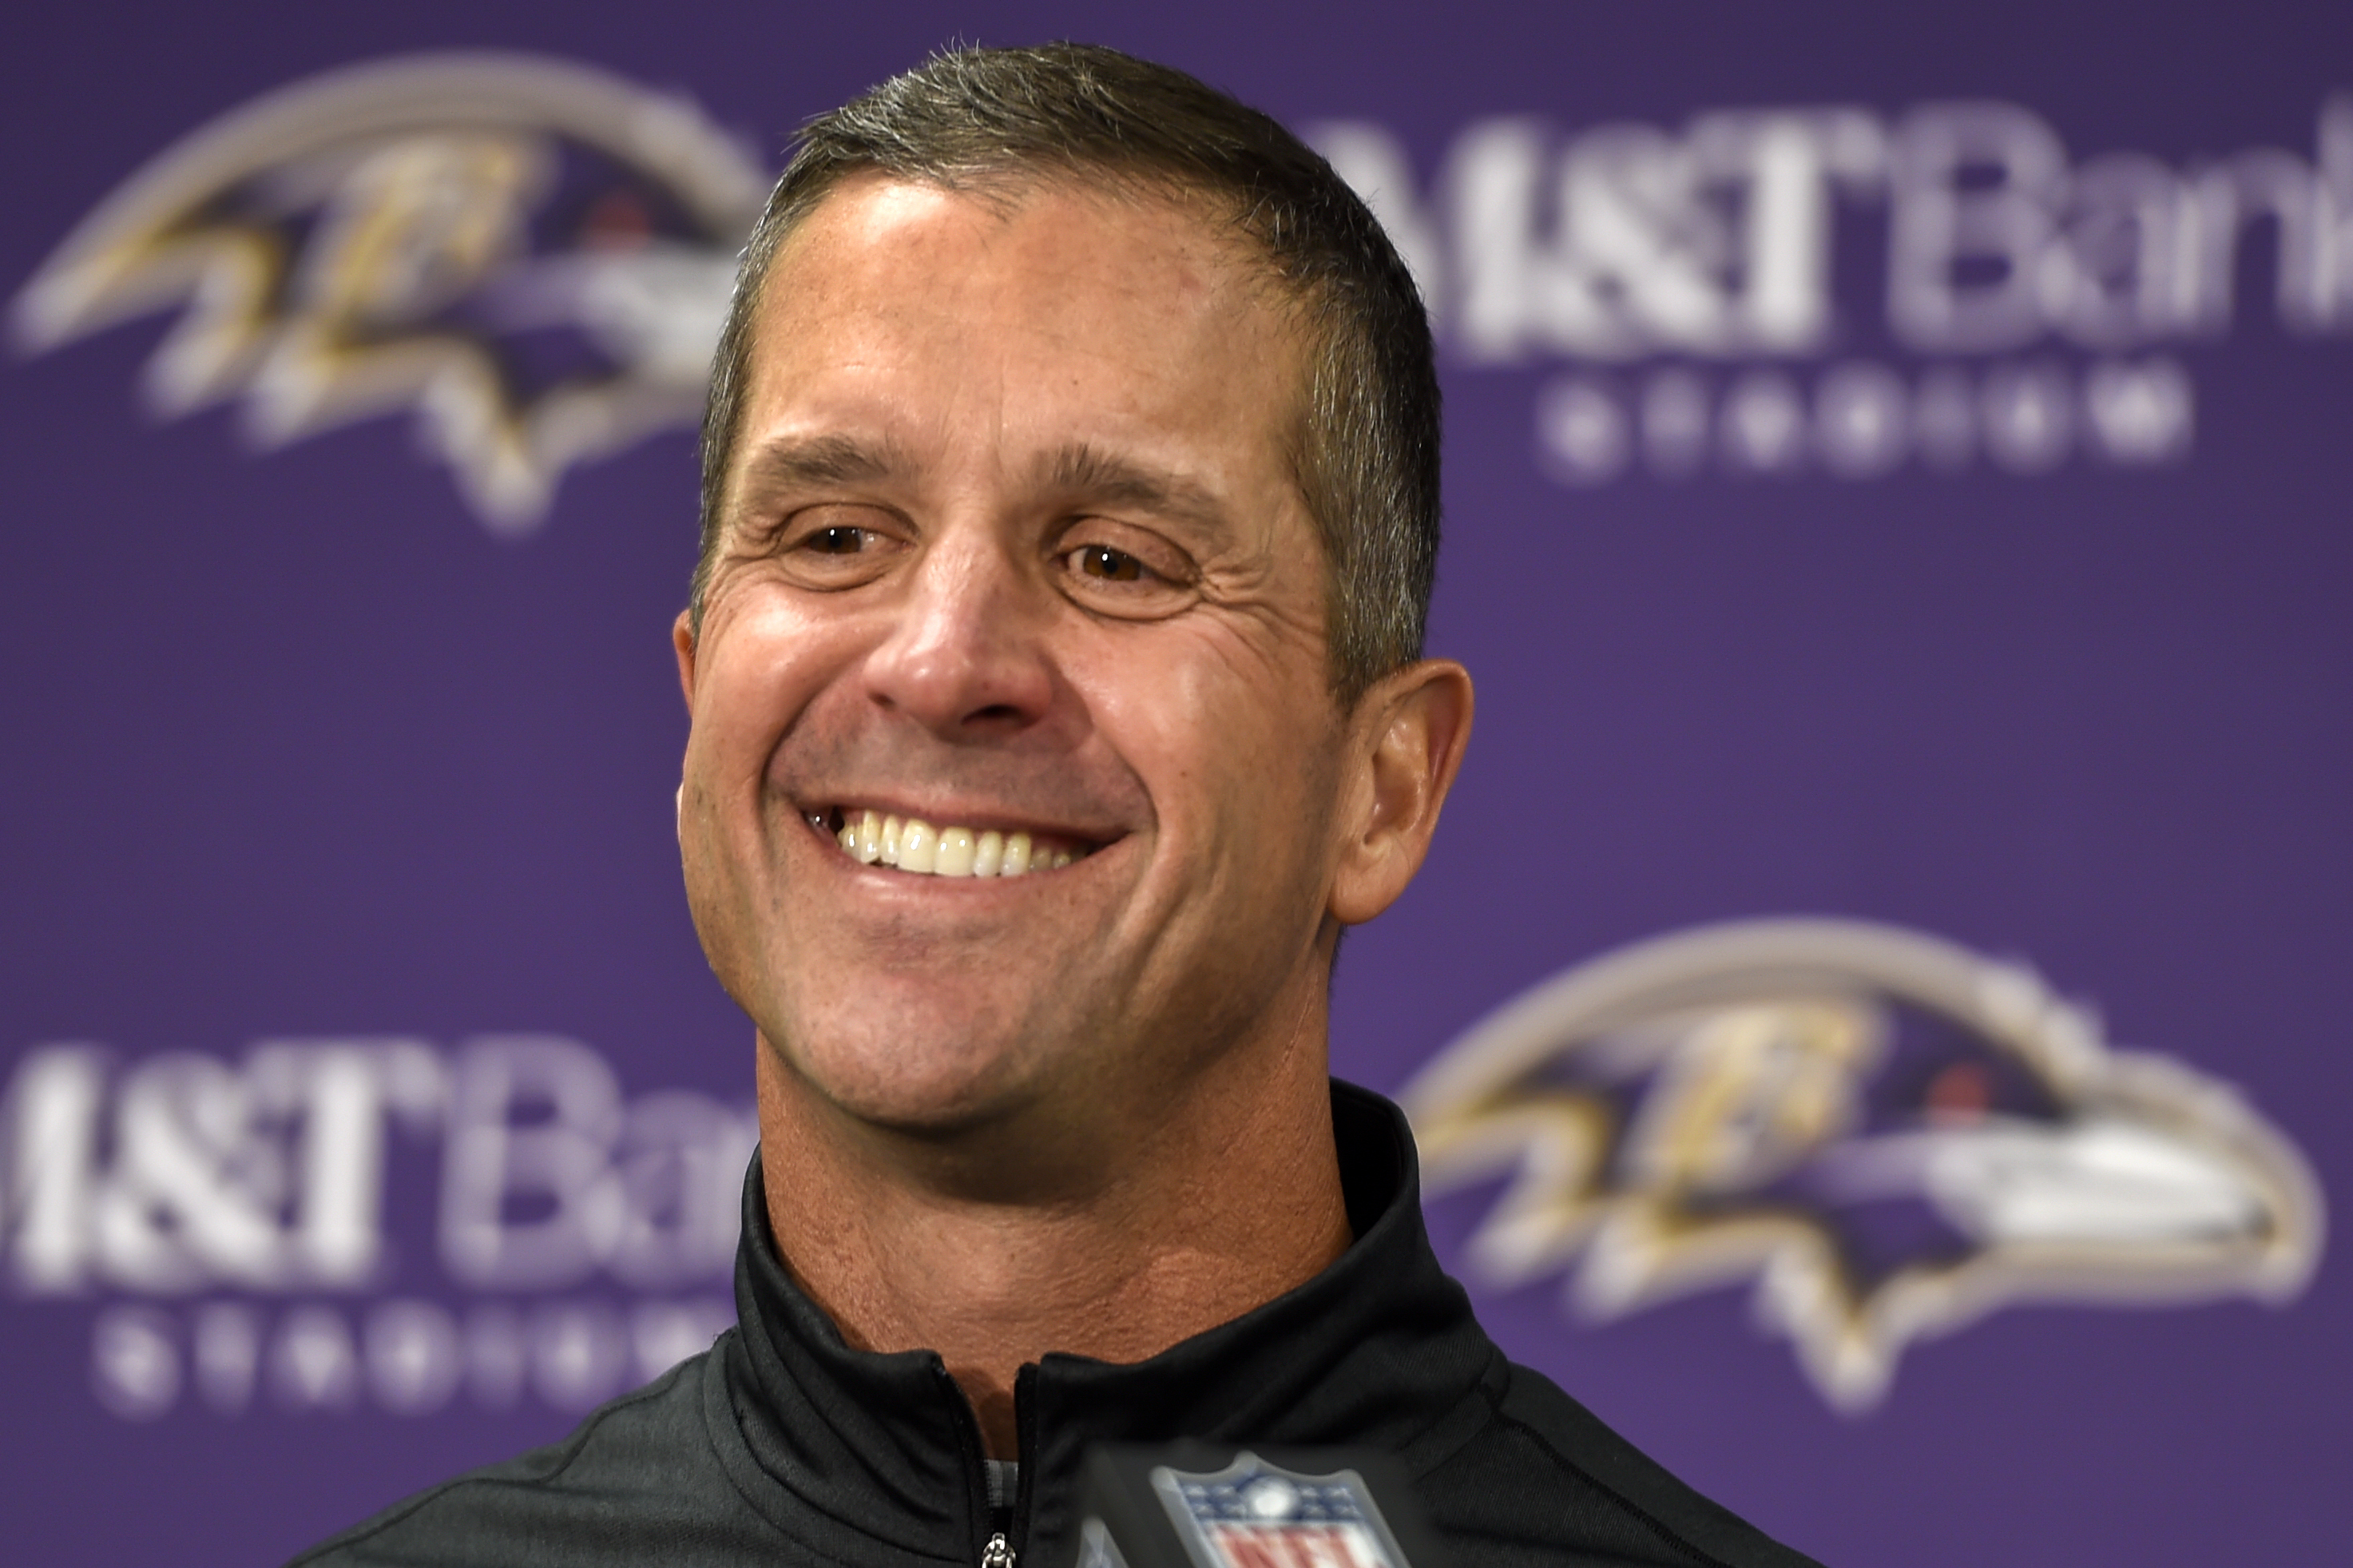 FILE - In this Sunday, Nov. 27, 2016, file photo, Baltimore Ravens head coach John Harbaugh answers a question during a post game press conference after defeating the Cincinnati Bengals 19-14, in Baltimore. With Baltimore leading Cincinnati by seven point